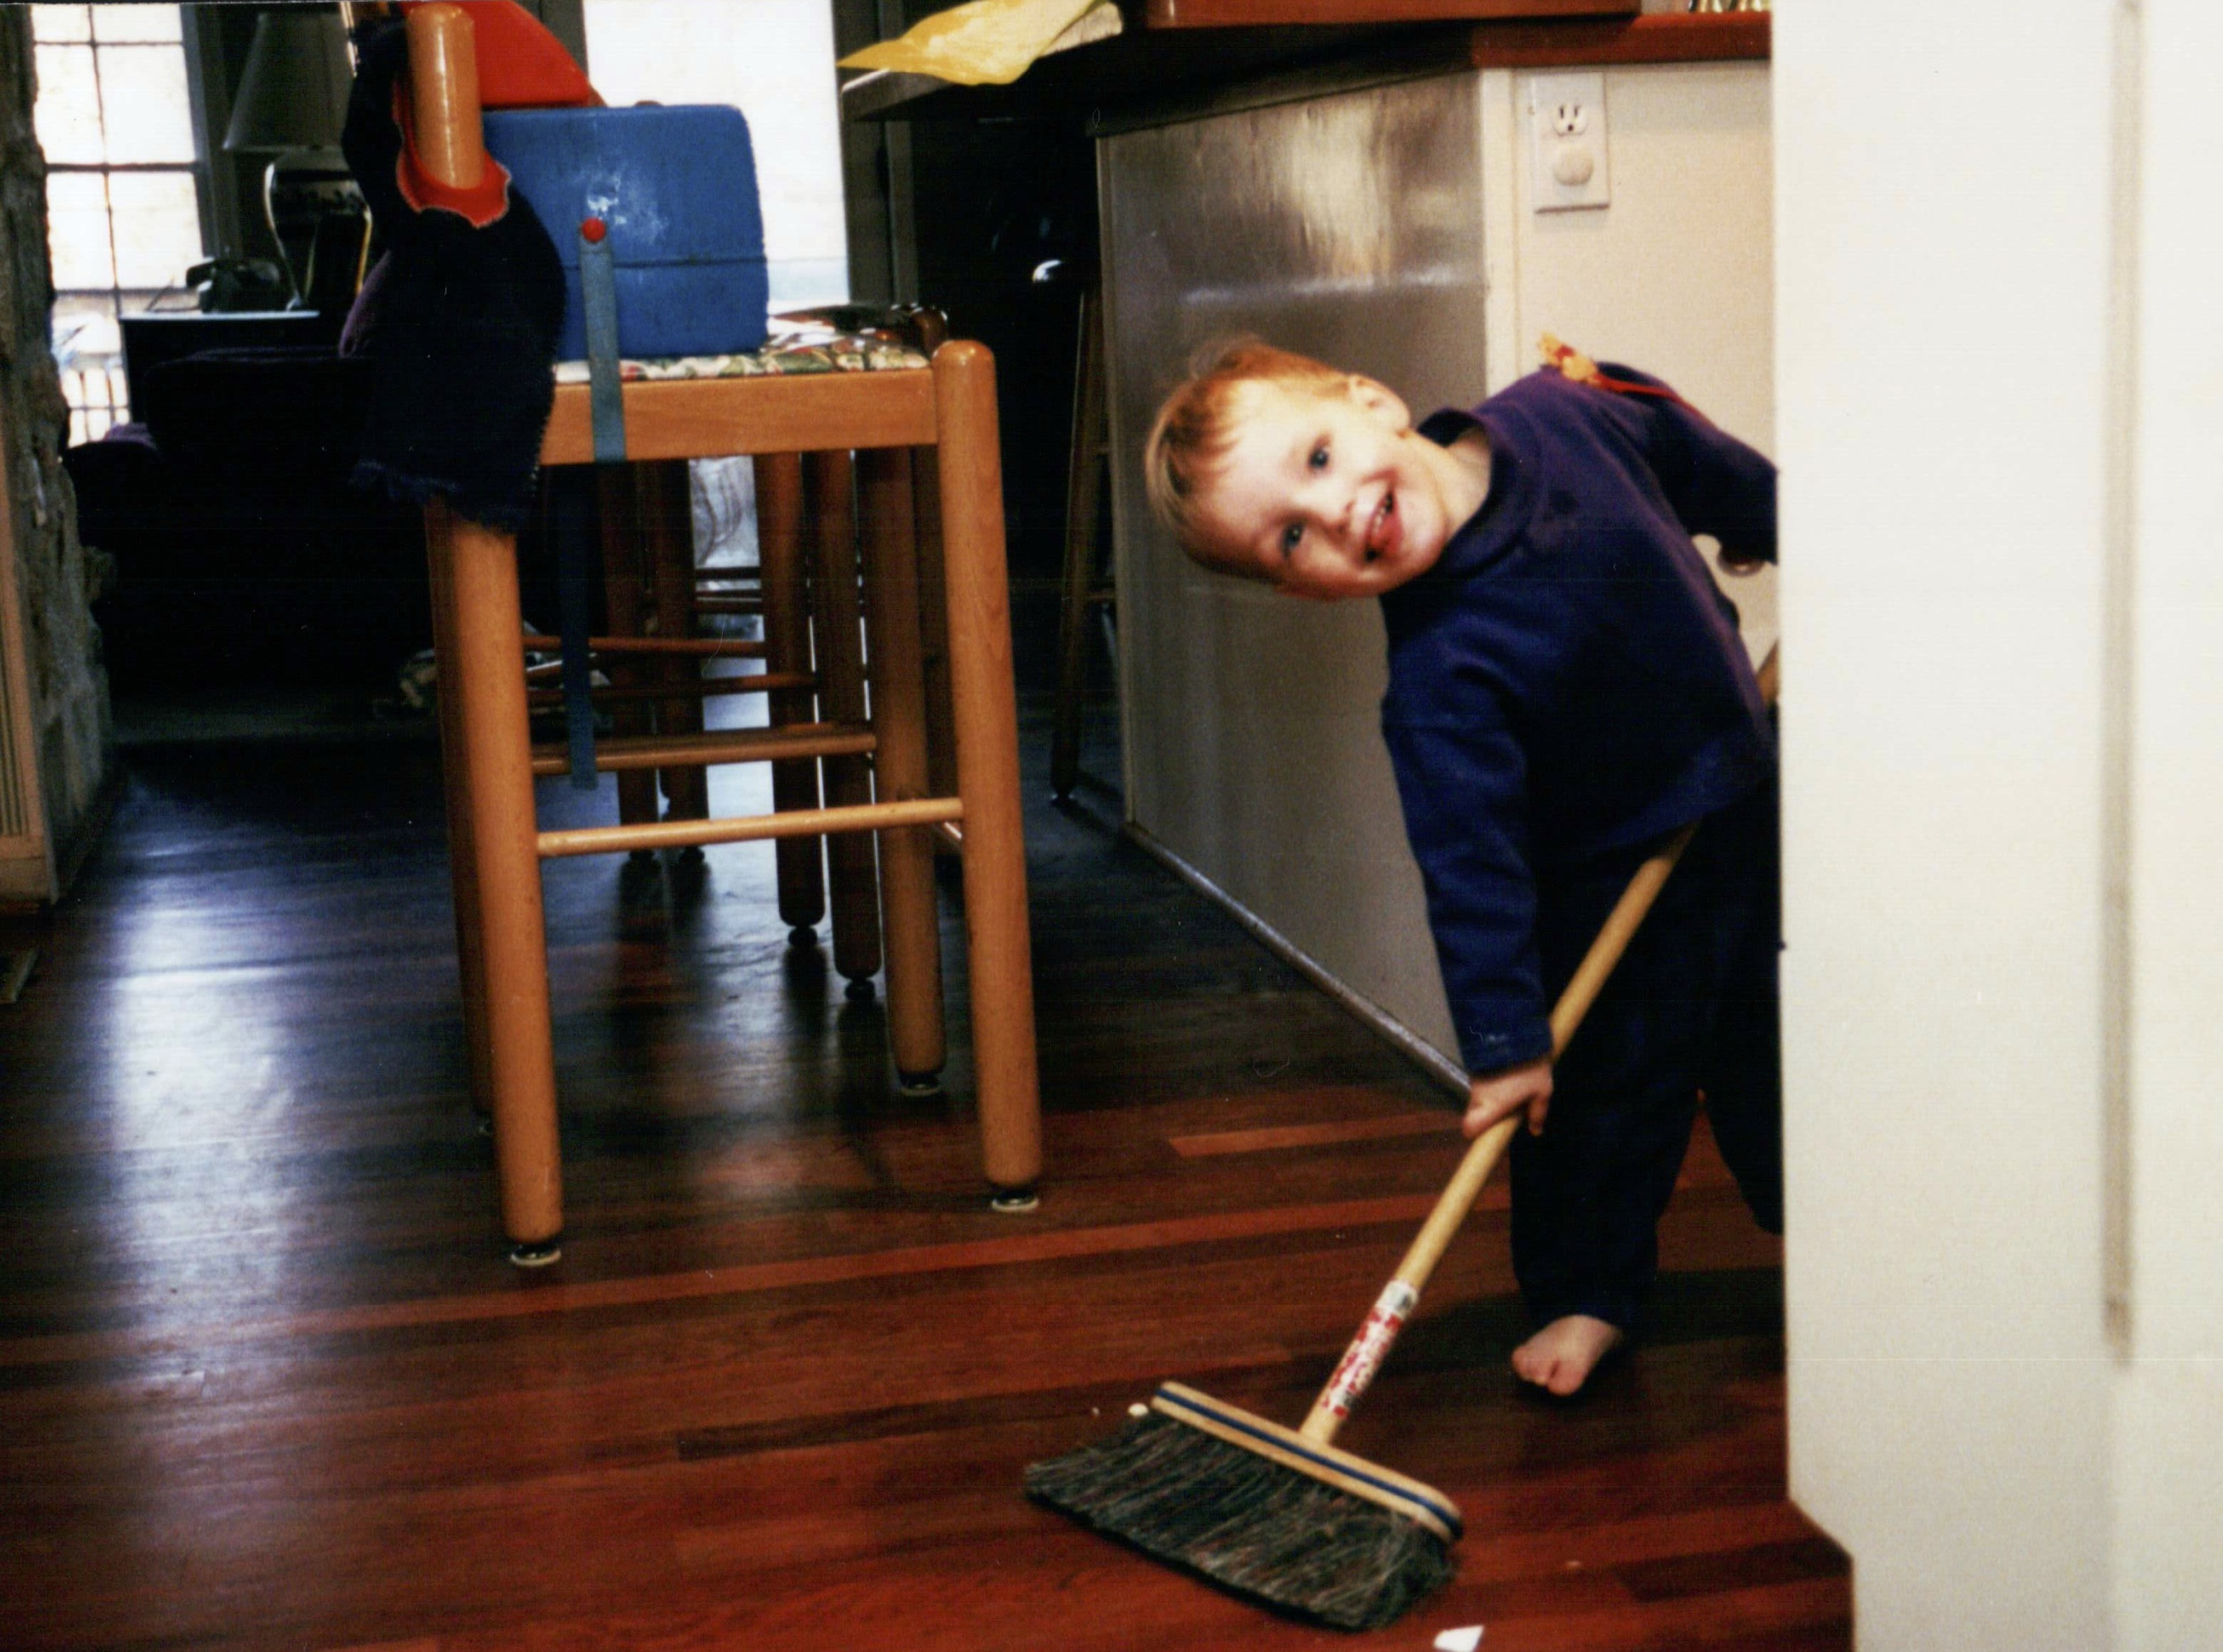 My youngest son Luke, helping clean up after dinner many years ago!